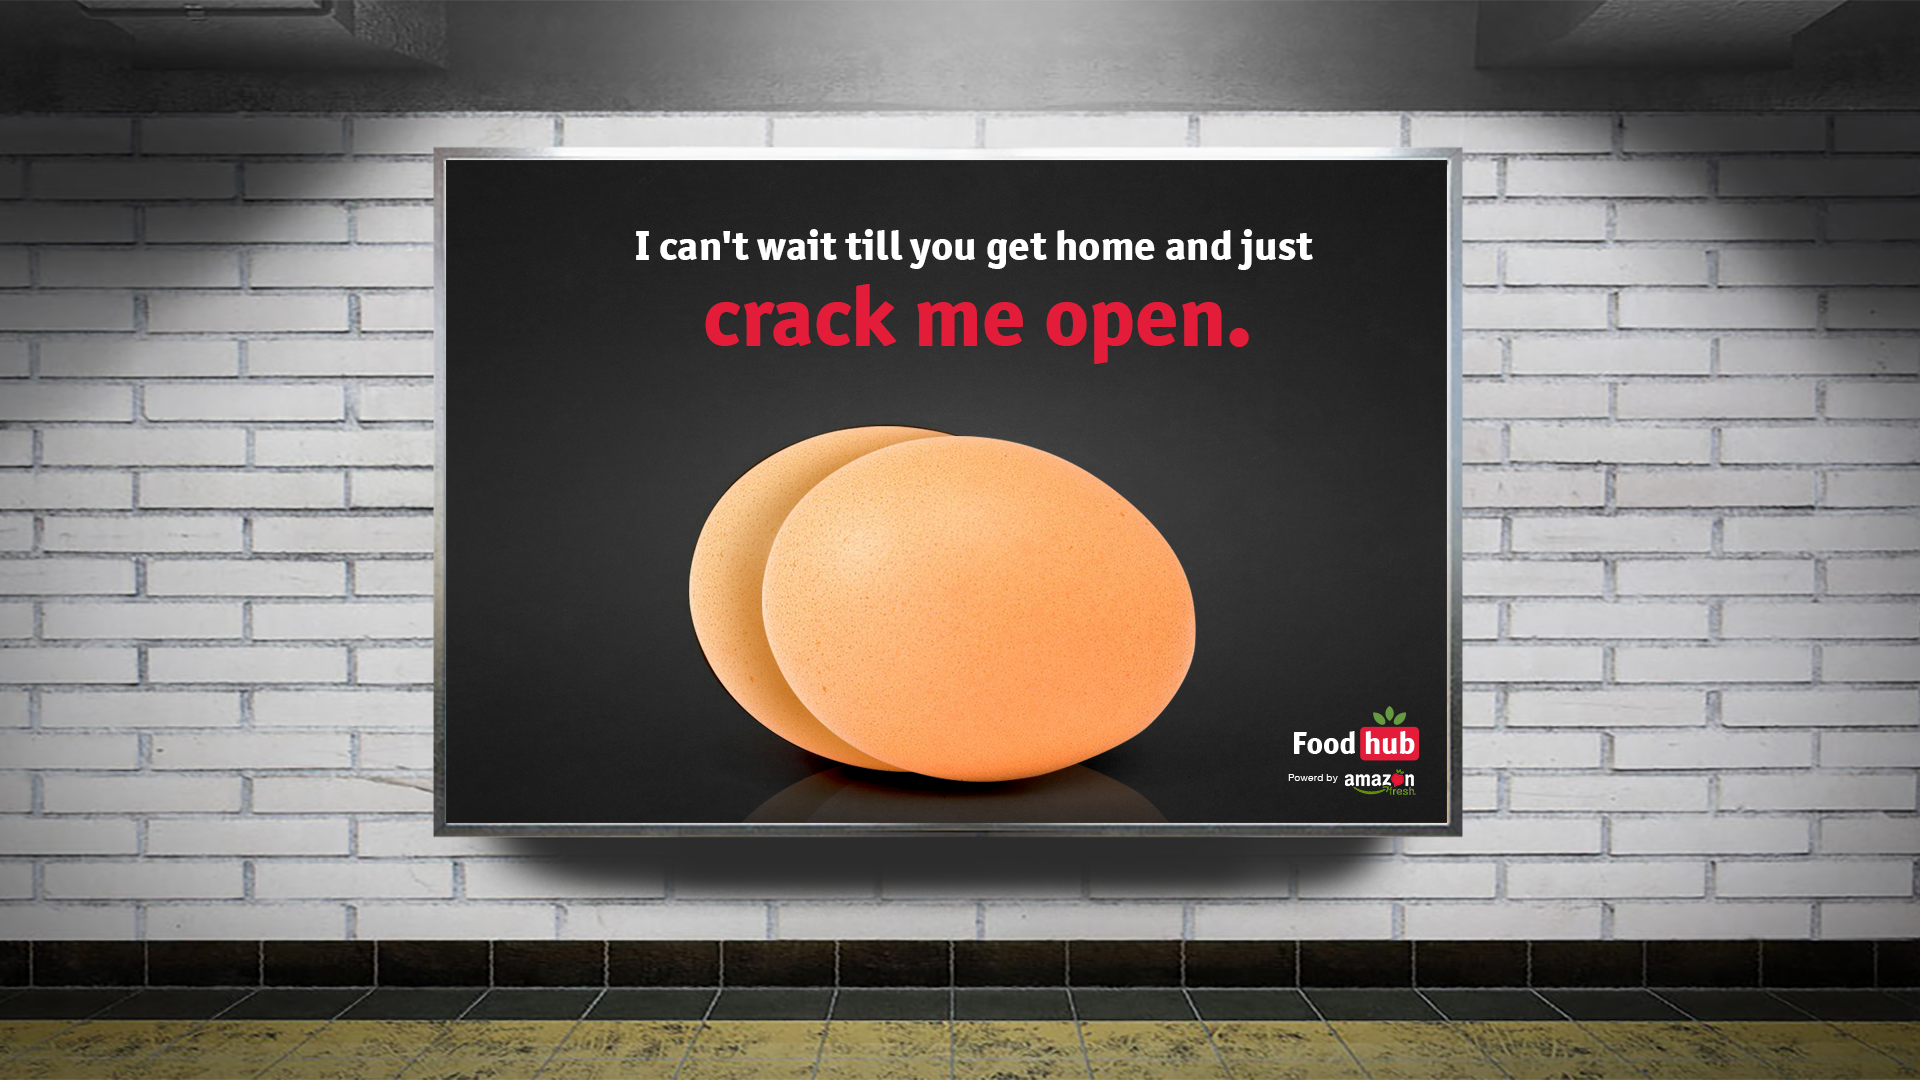 subway-advertising-mockup-free-psd.png